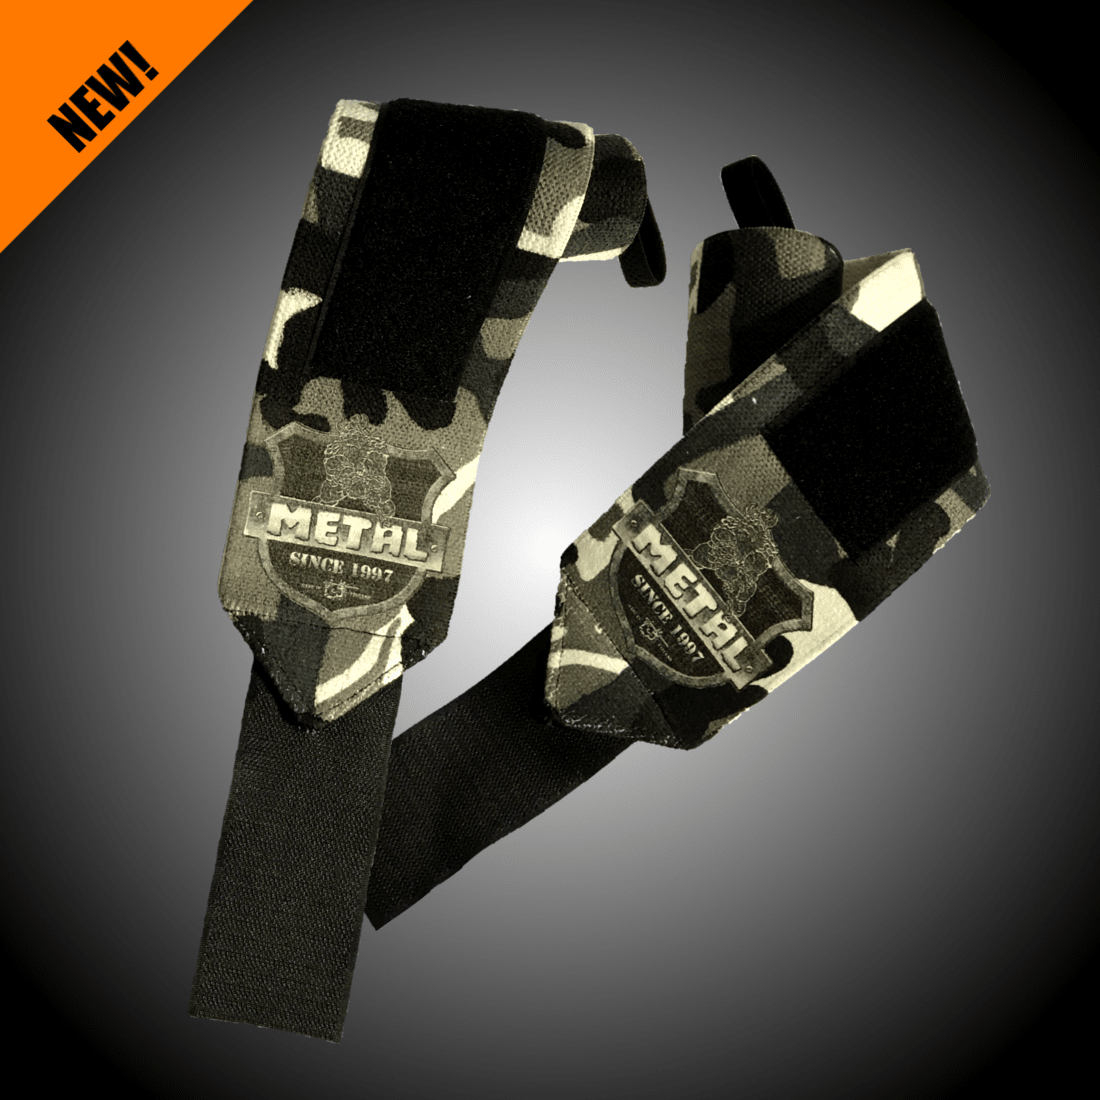 METAL Mystical Wrist Wraps - gray camo (pár)